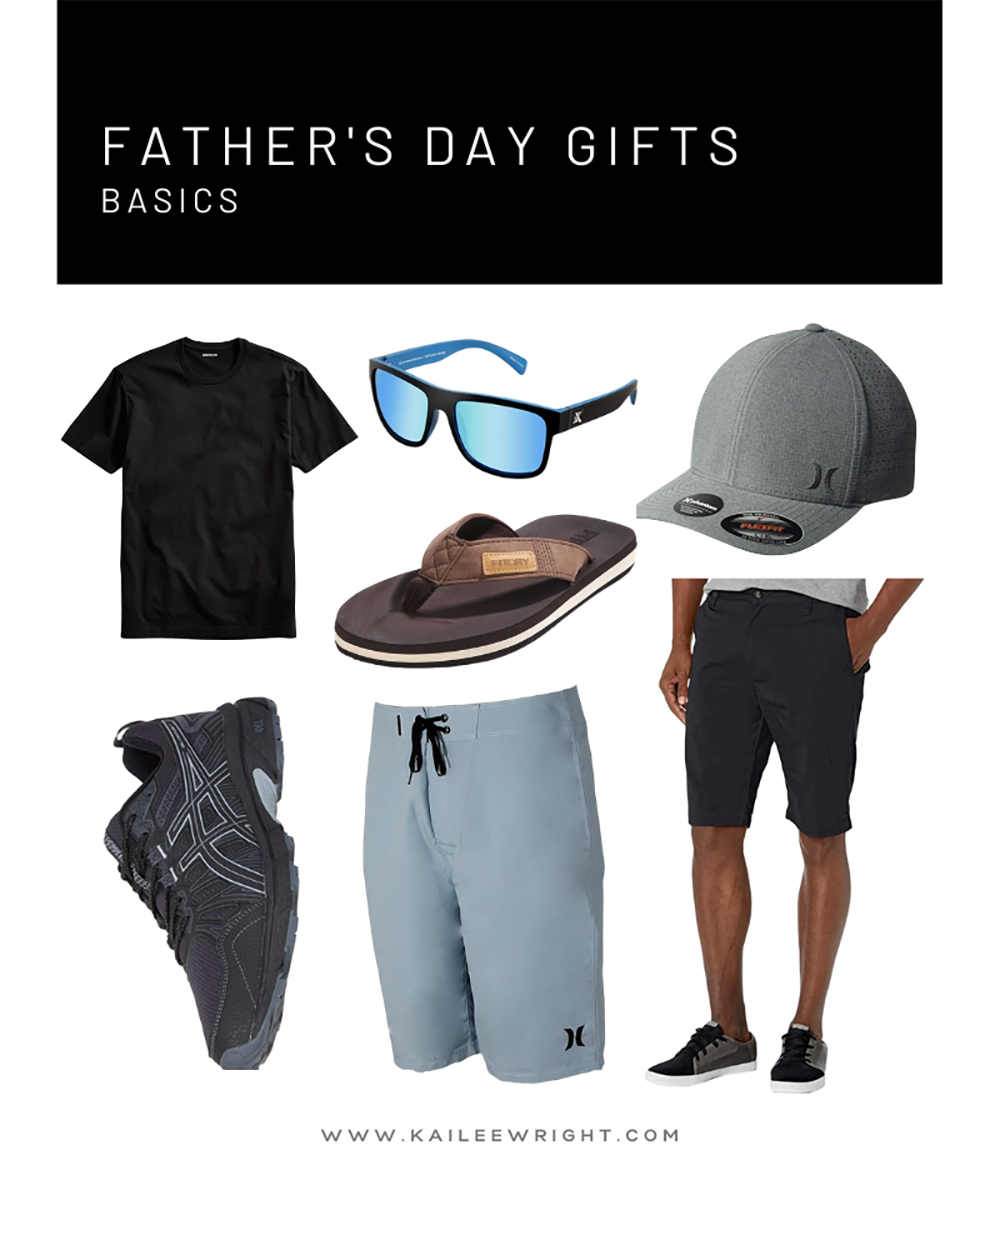 Best Father's Day Gifts 2021